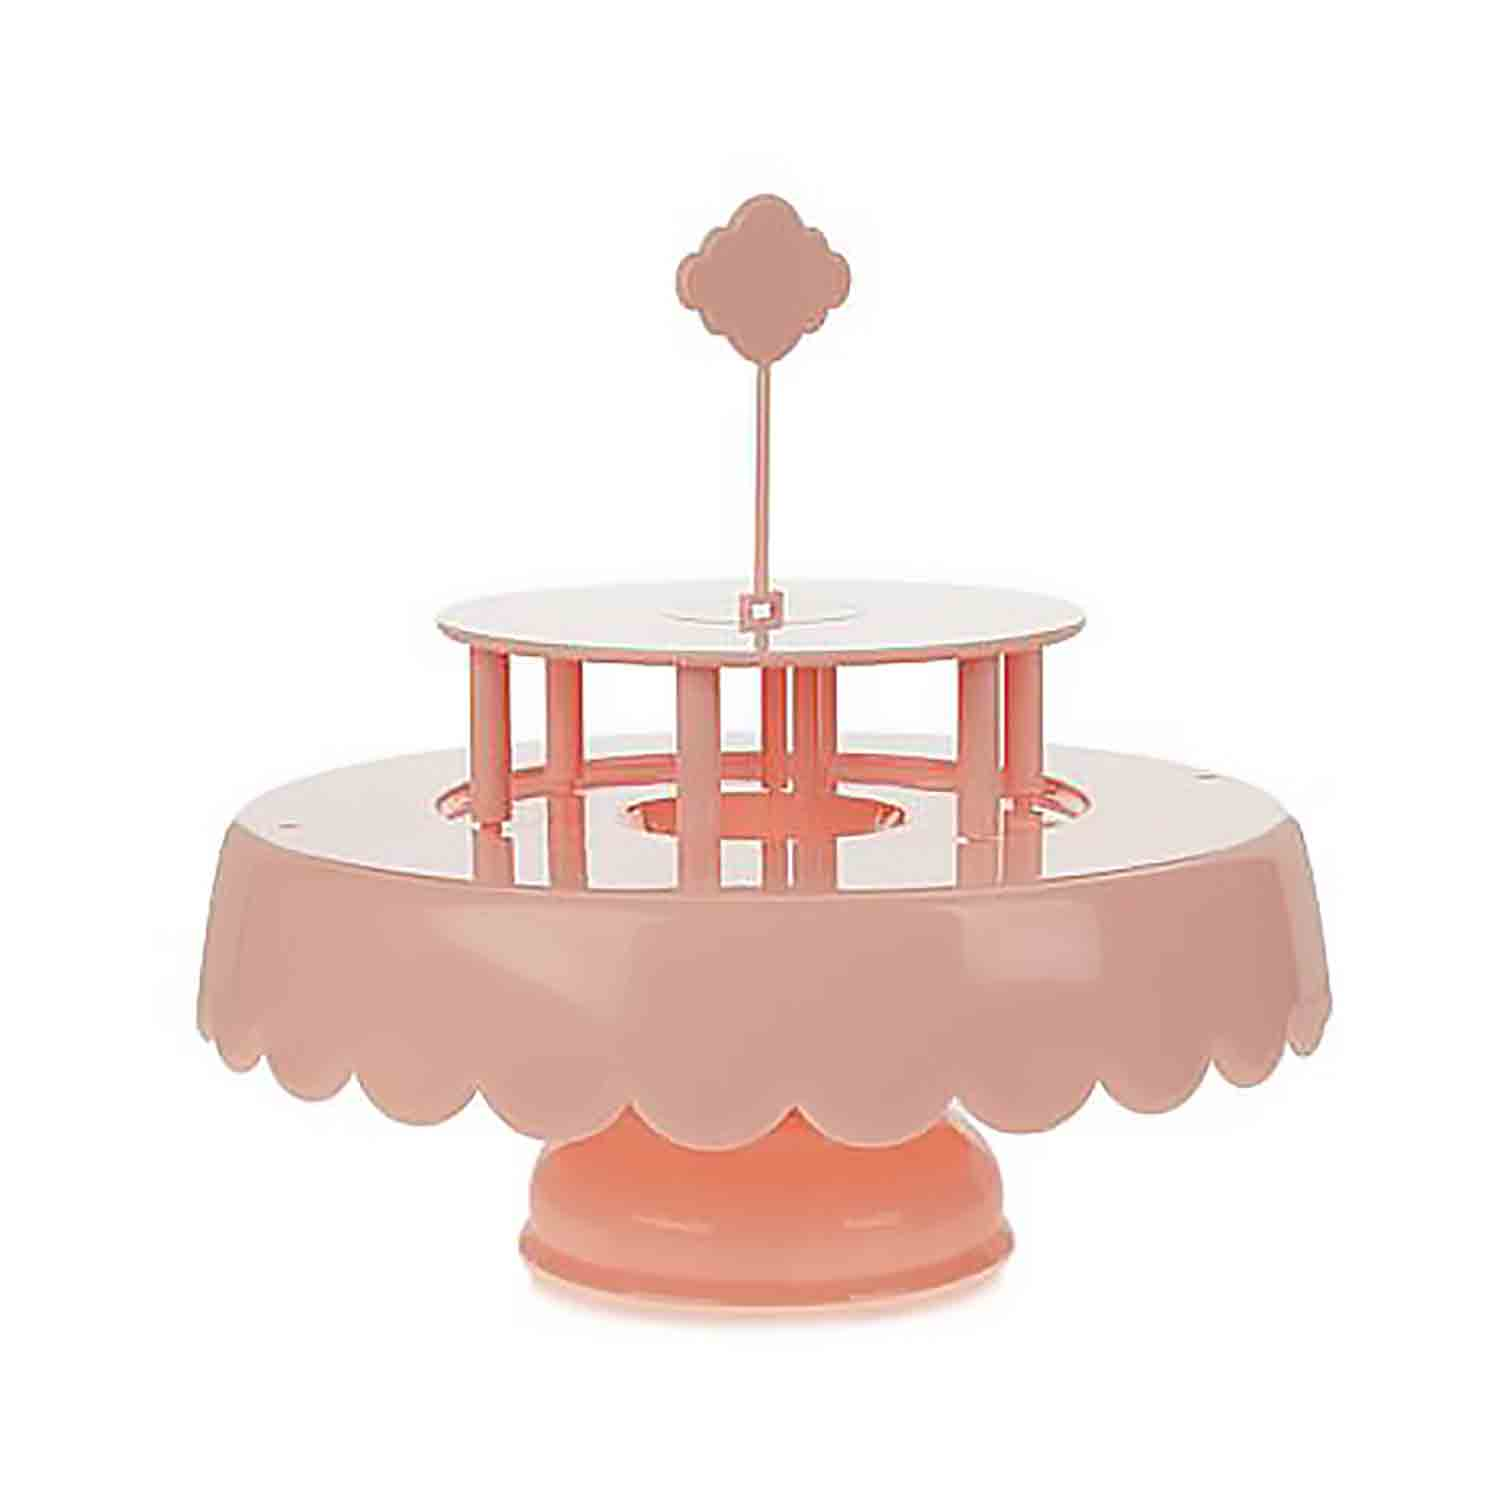 Magic Sweet Cake Stand Set - Pink